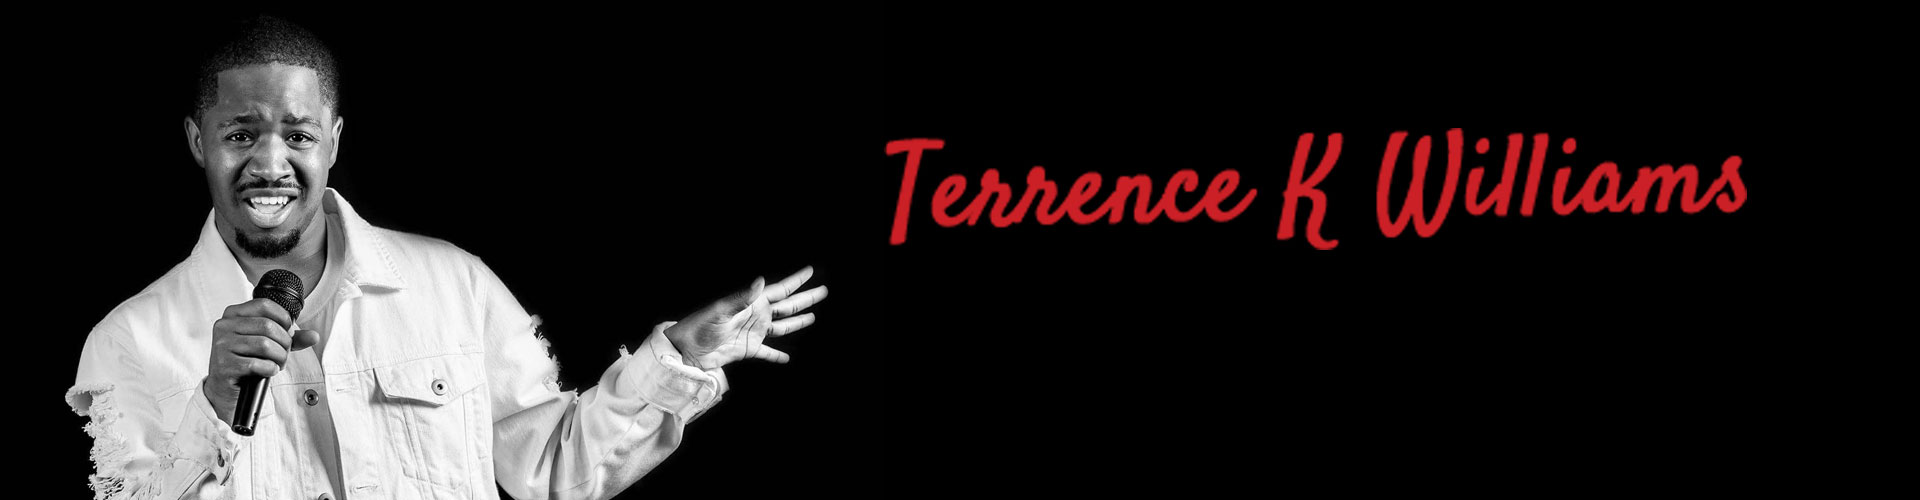 terrence-k-williams-banner.jpg